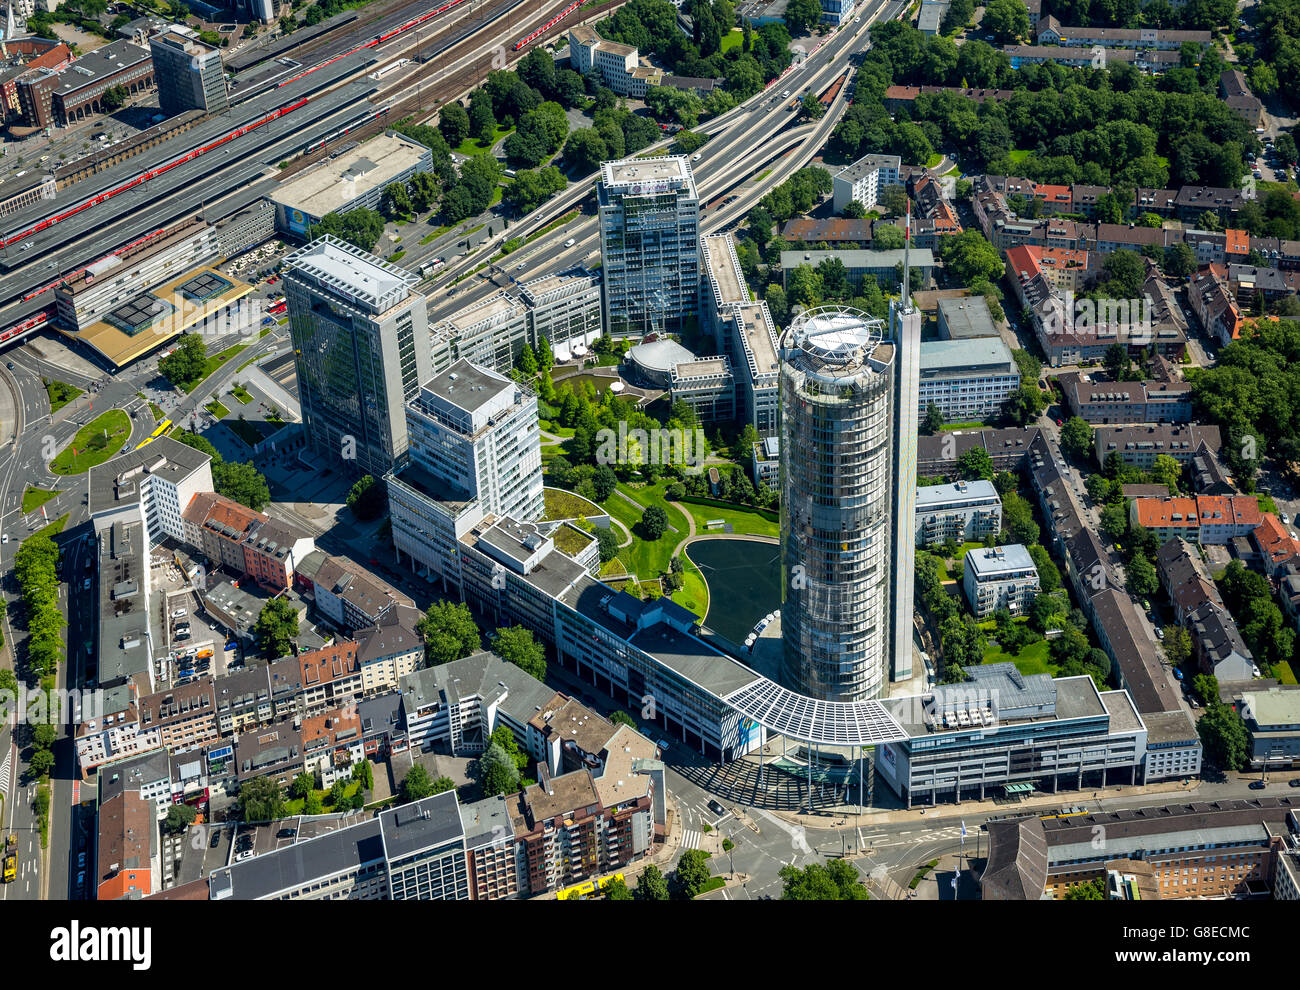 Aerial view, RWE Tower, EVONIK Headquarters, RAG-management, central station south entrance, Essen, Ruhr Area, Stock Photo